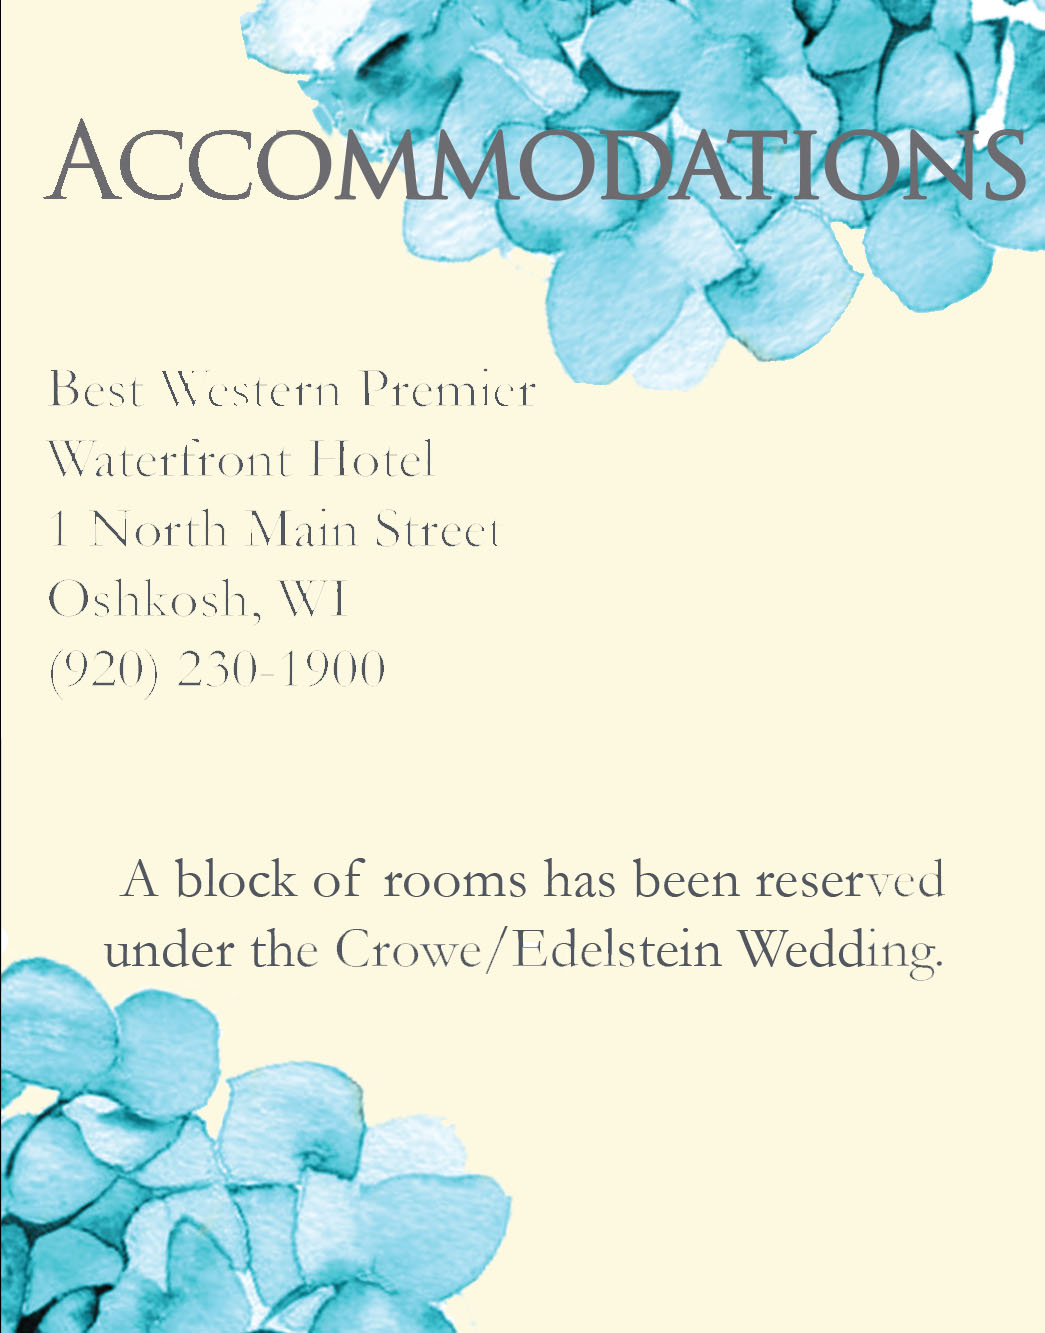 Heavenly Hydrangeas accommodations